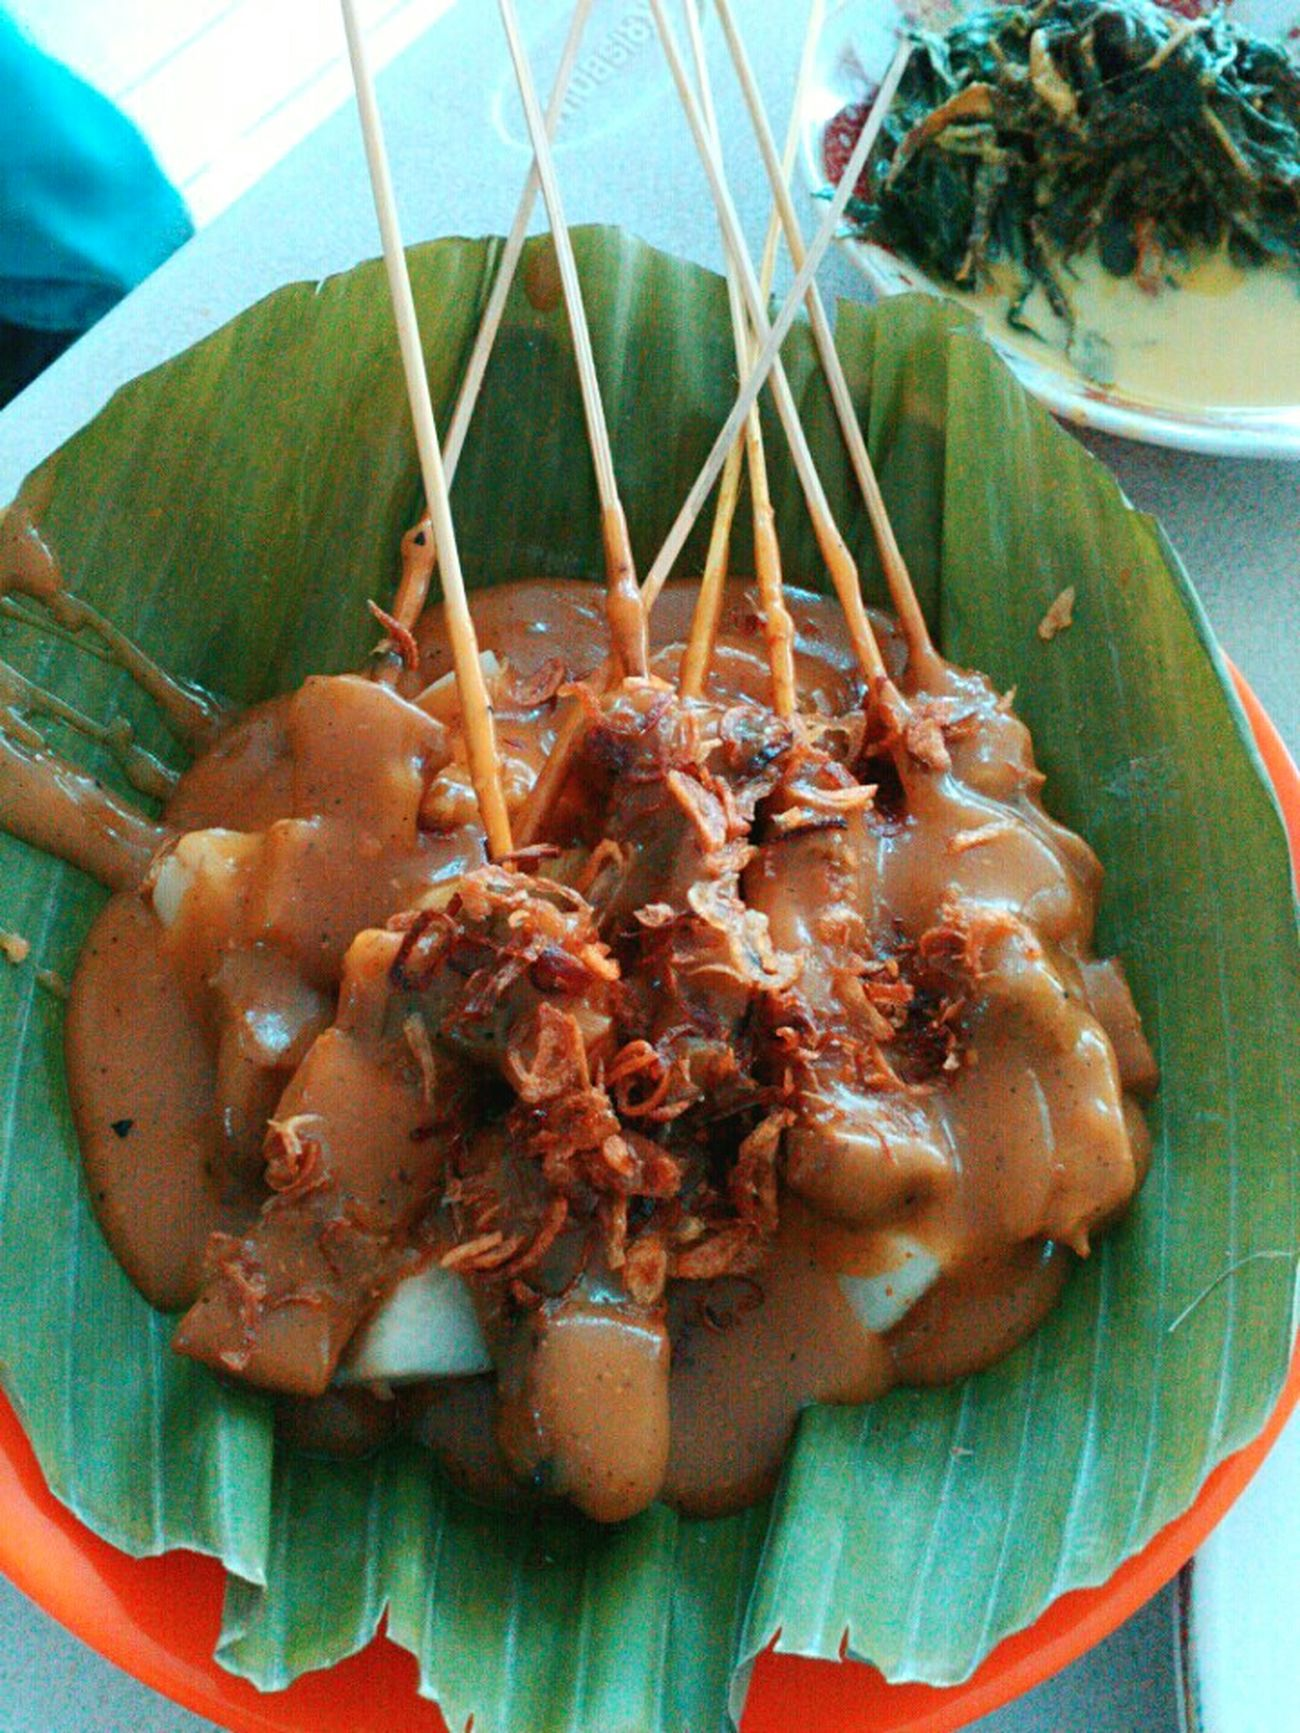 Sate Padang Bopet Mini Pasar Benhil Indonesianfoodstreet Indonesia_photography Indonesianfood Indonesian Culinary Foodmarket